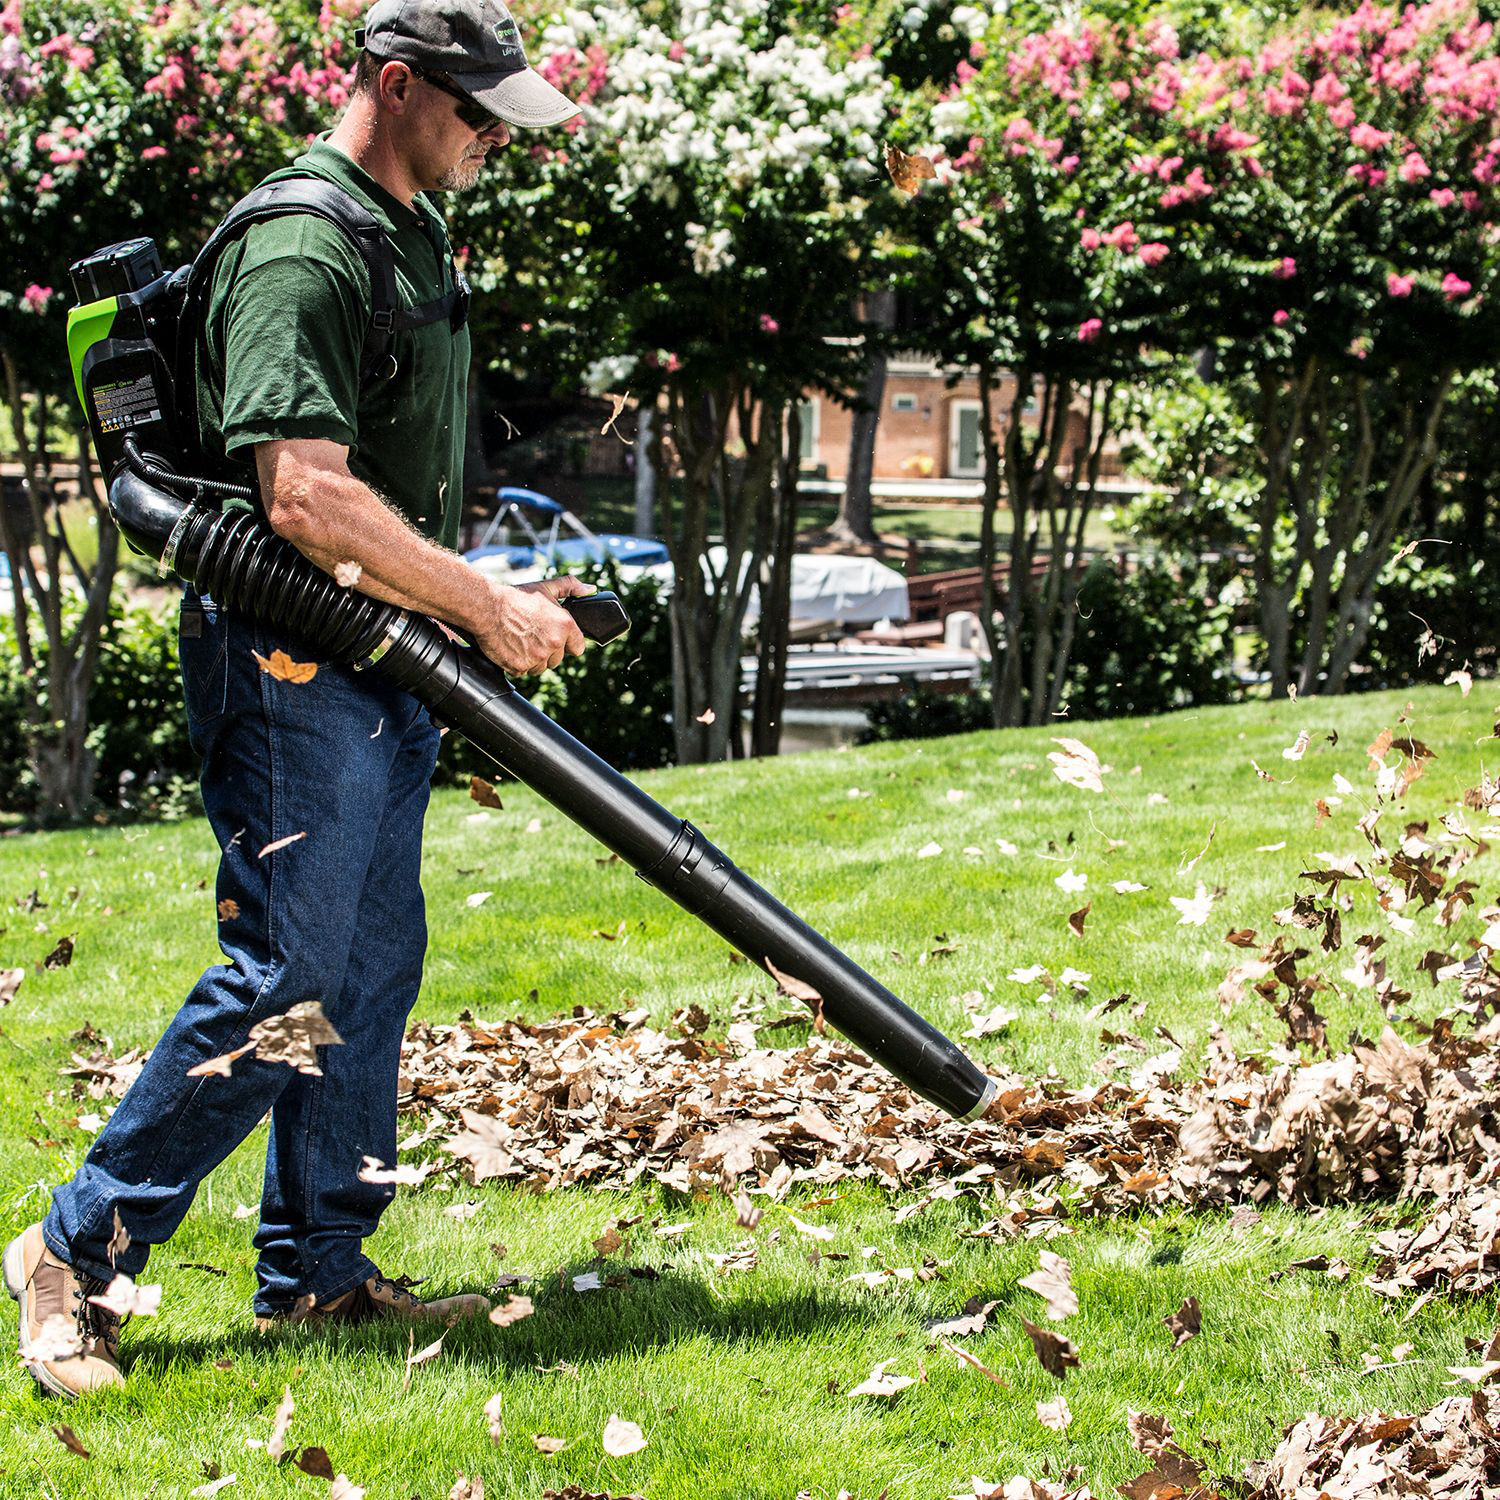 5 Tips To Keep In Mind When Using Backpack Leaf Blowers In Your Garden